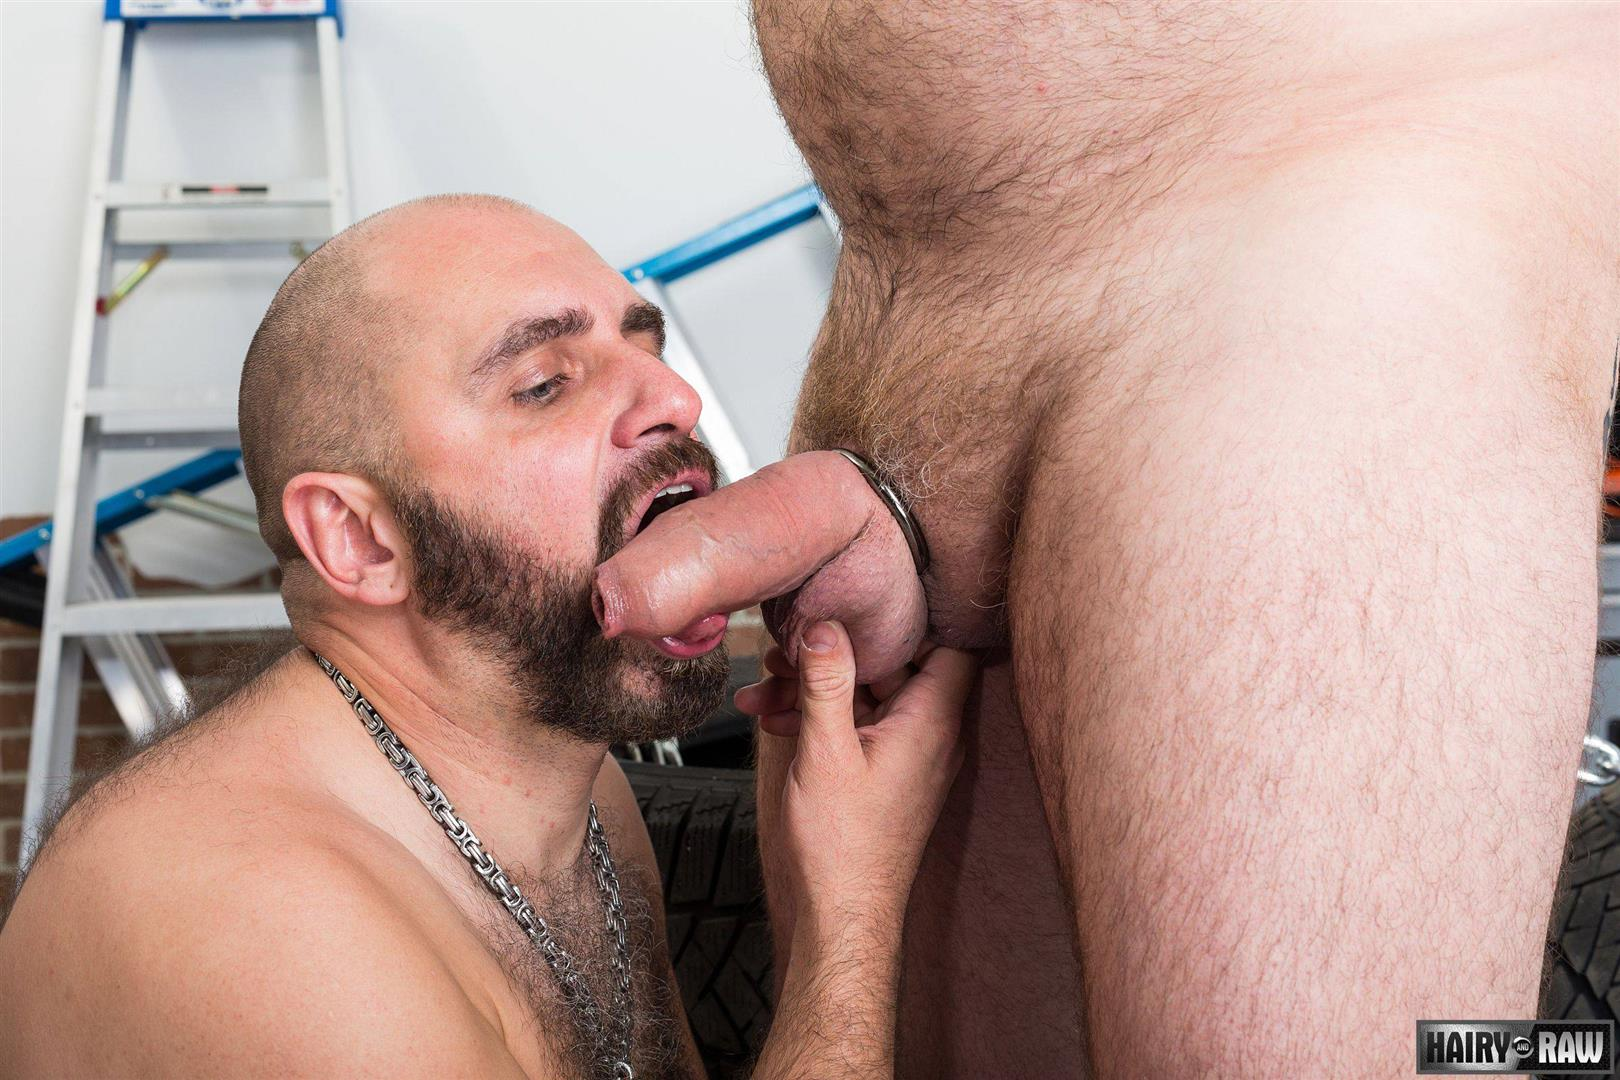 Hairy-and-Raw-Vince-Stewart-and-Martin-Pe-Hairy-Chubby-Dads-Barebacking-Uncut-Cocks-Amateur-Gay-Porn-08 Hairy Chubby Dads With Thick Uncut Cocks Fucking Bareback